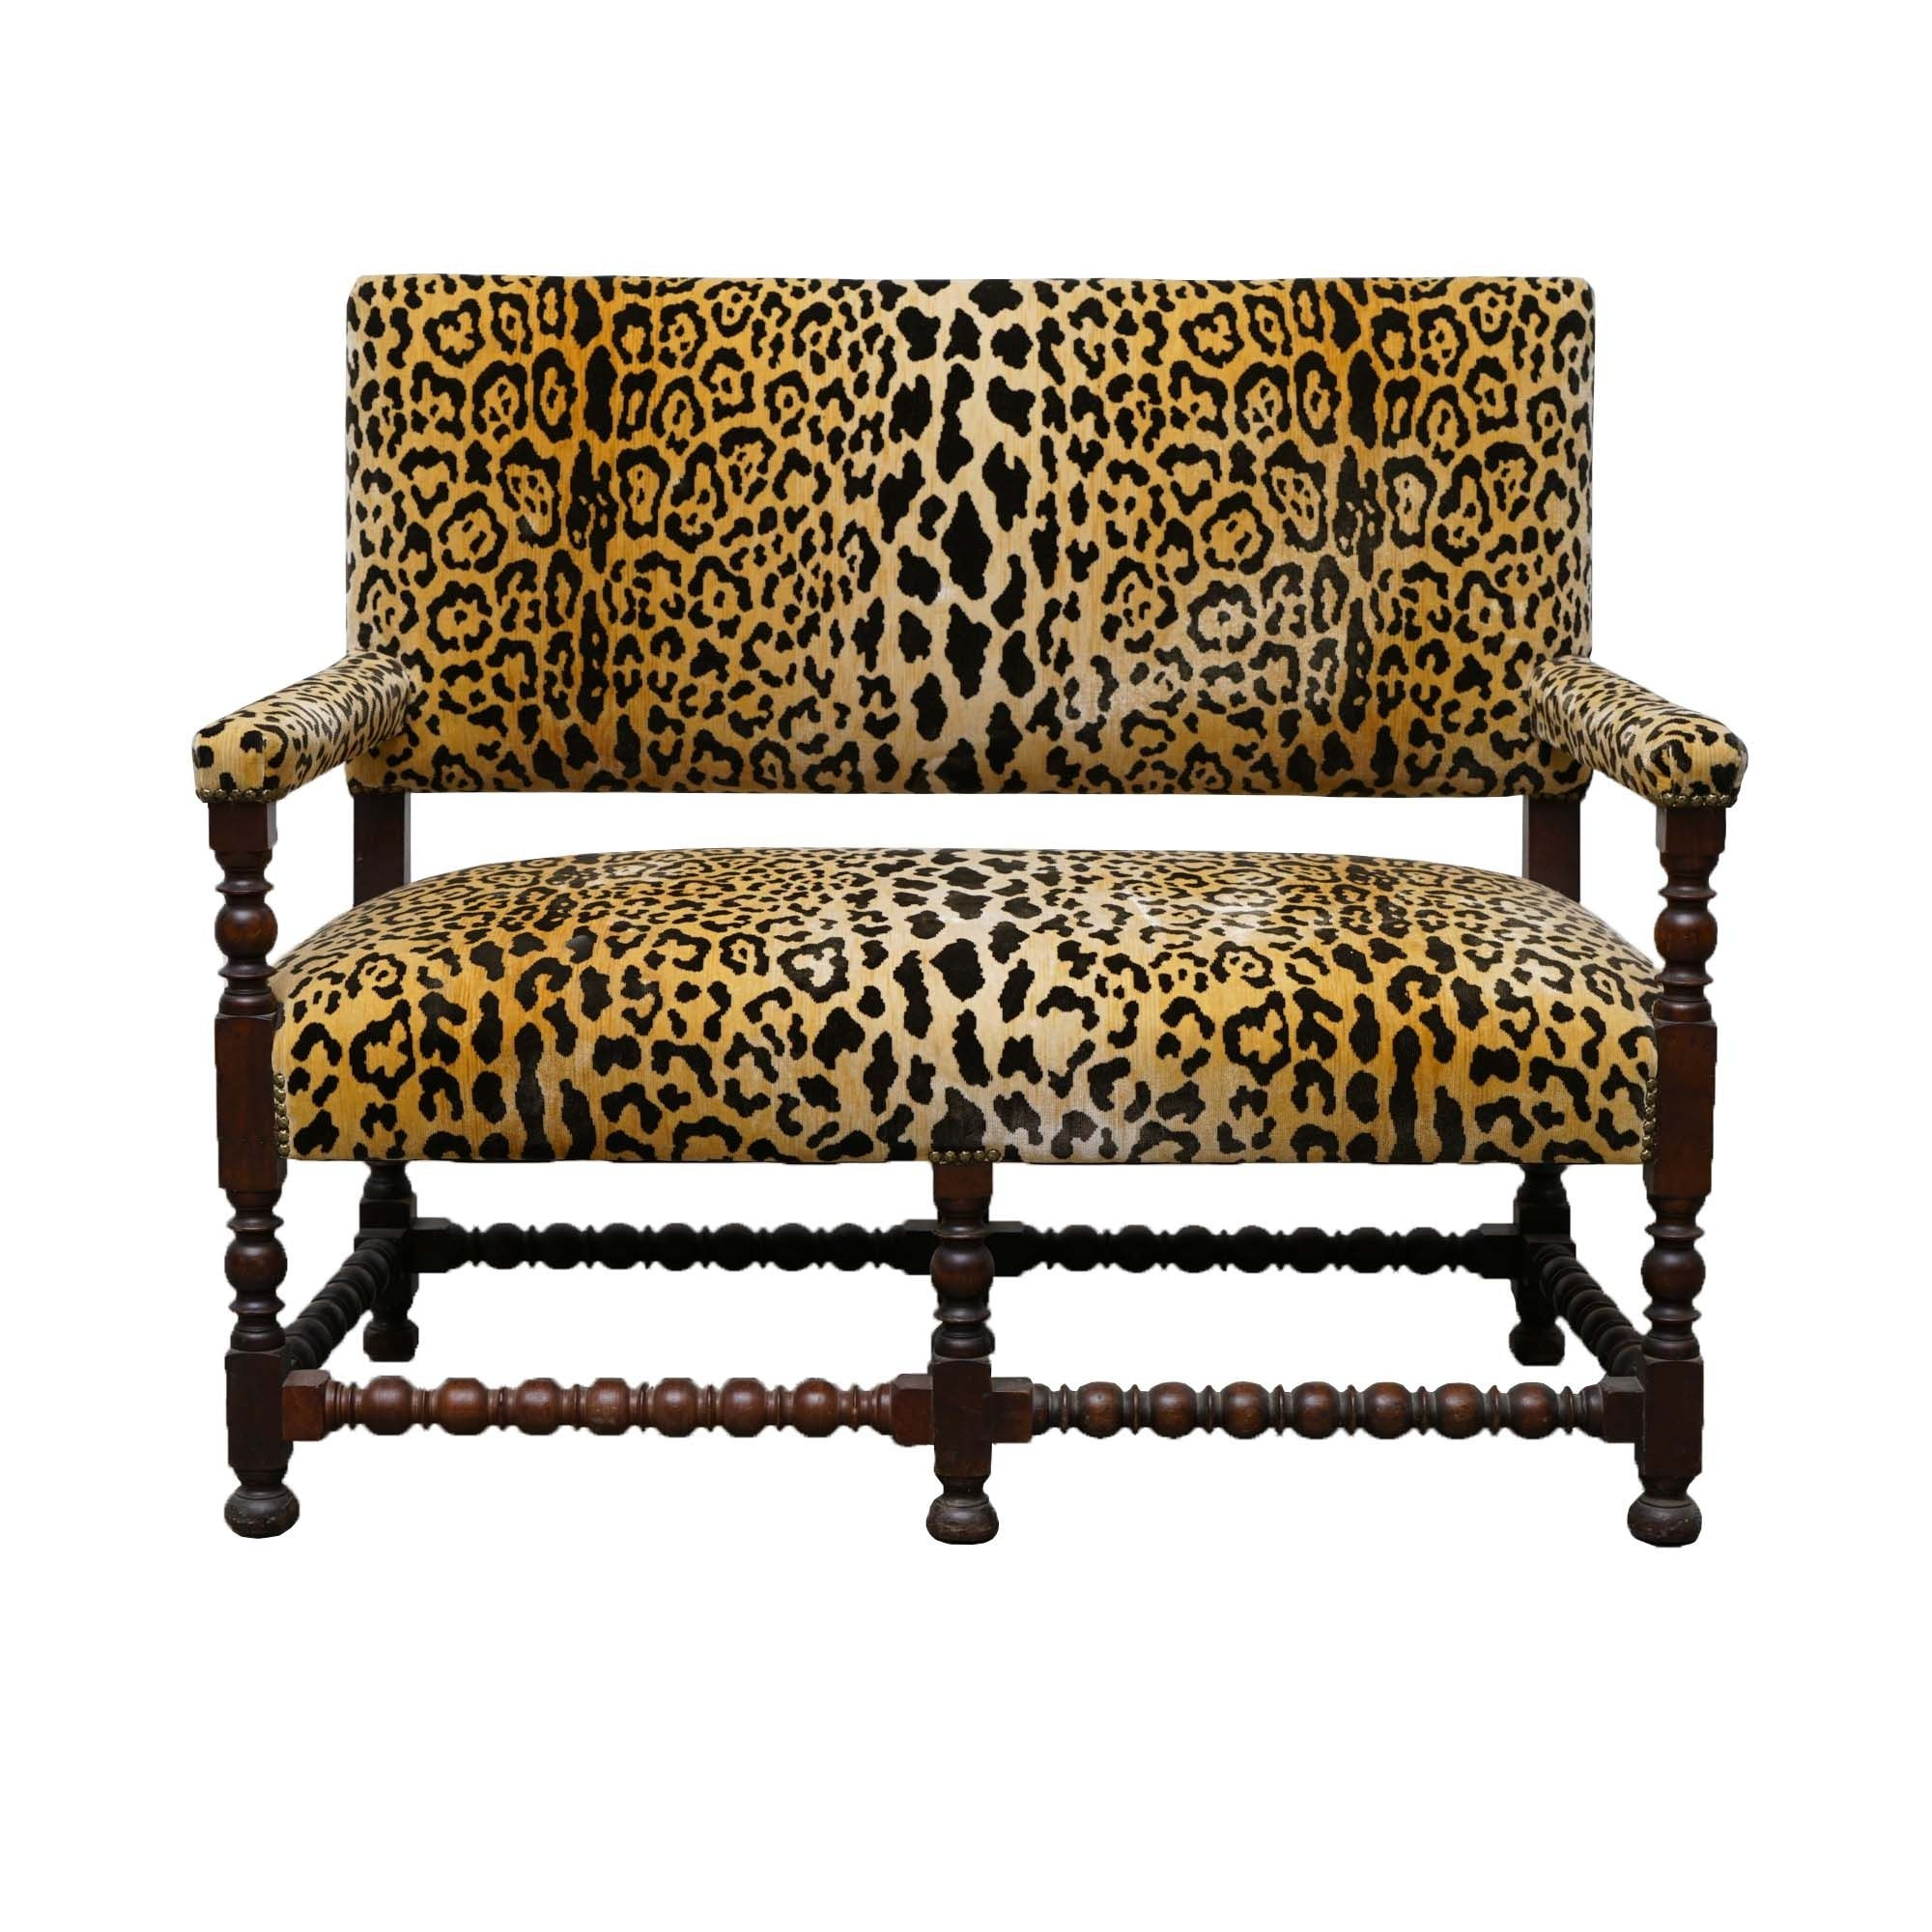 William and Mary Style Settee with Scalamandre Upholstery, 20th Century